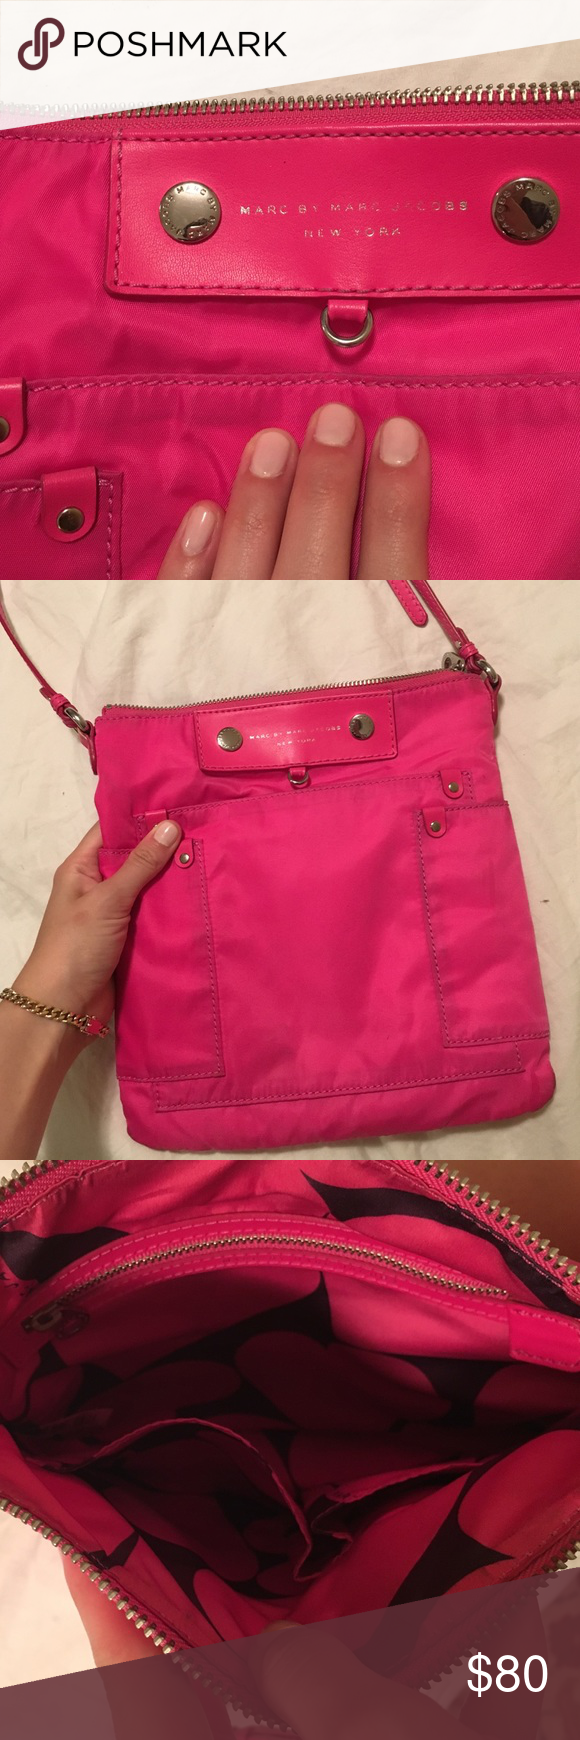 Marc by Marc Jacobs Cross Body Bag Beautiful lightly used pink Marc Jacobs bag. In good condition. Make an offer! Marc by Marc Jacobs Bags Crossbody Bags